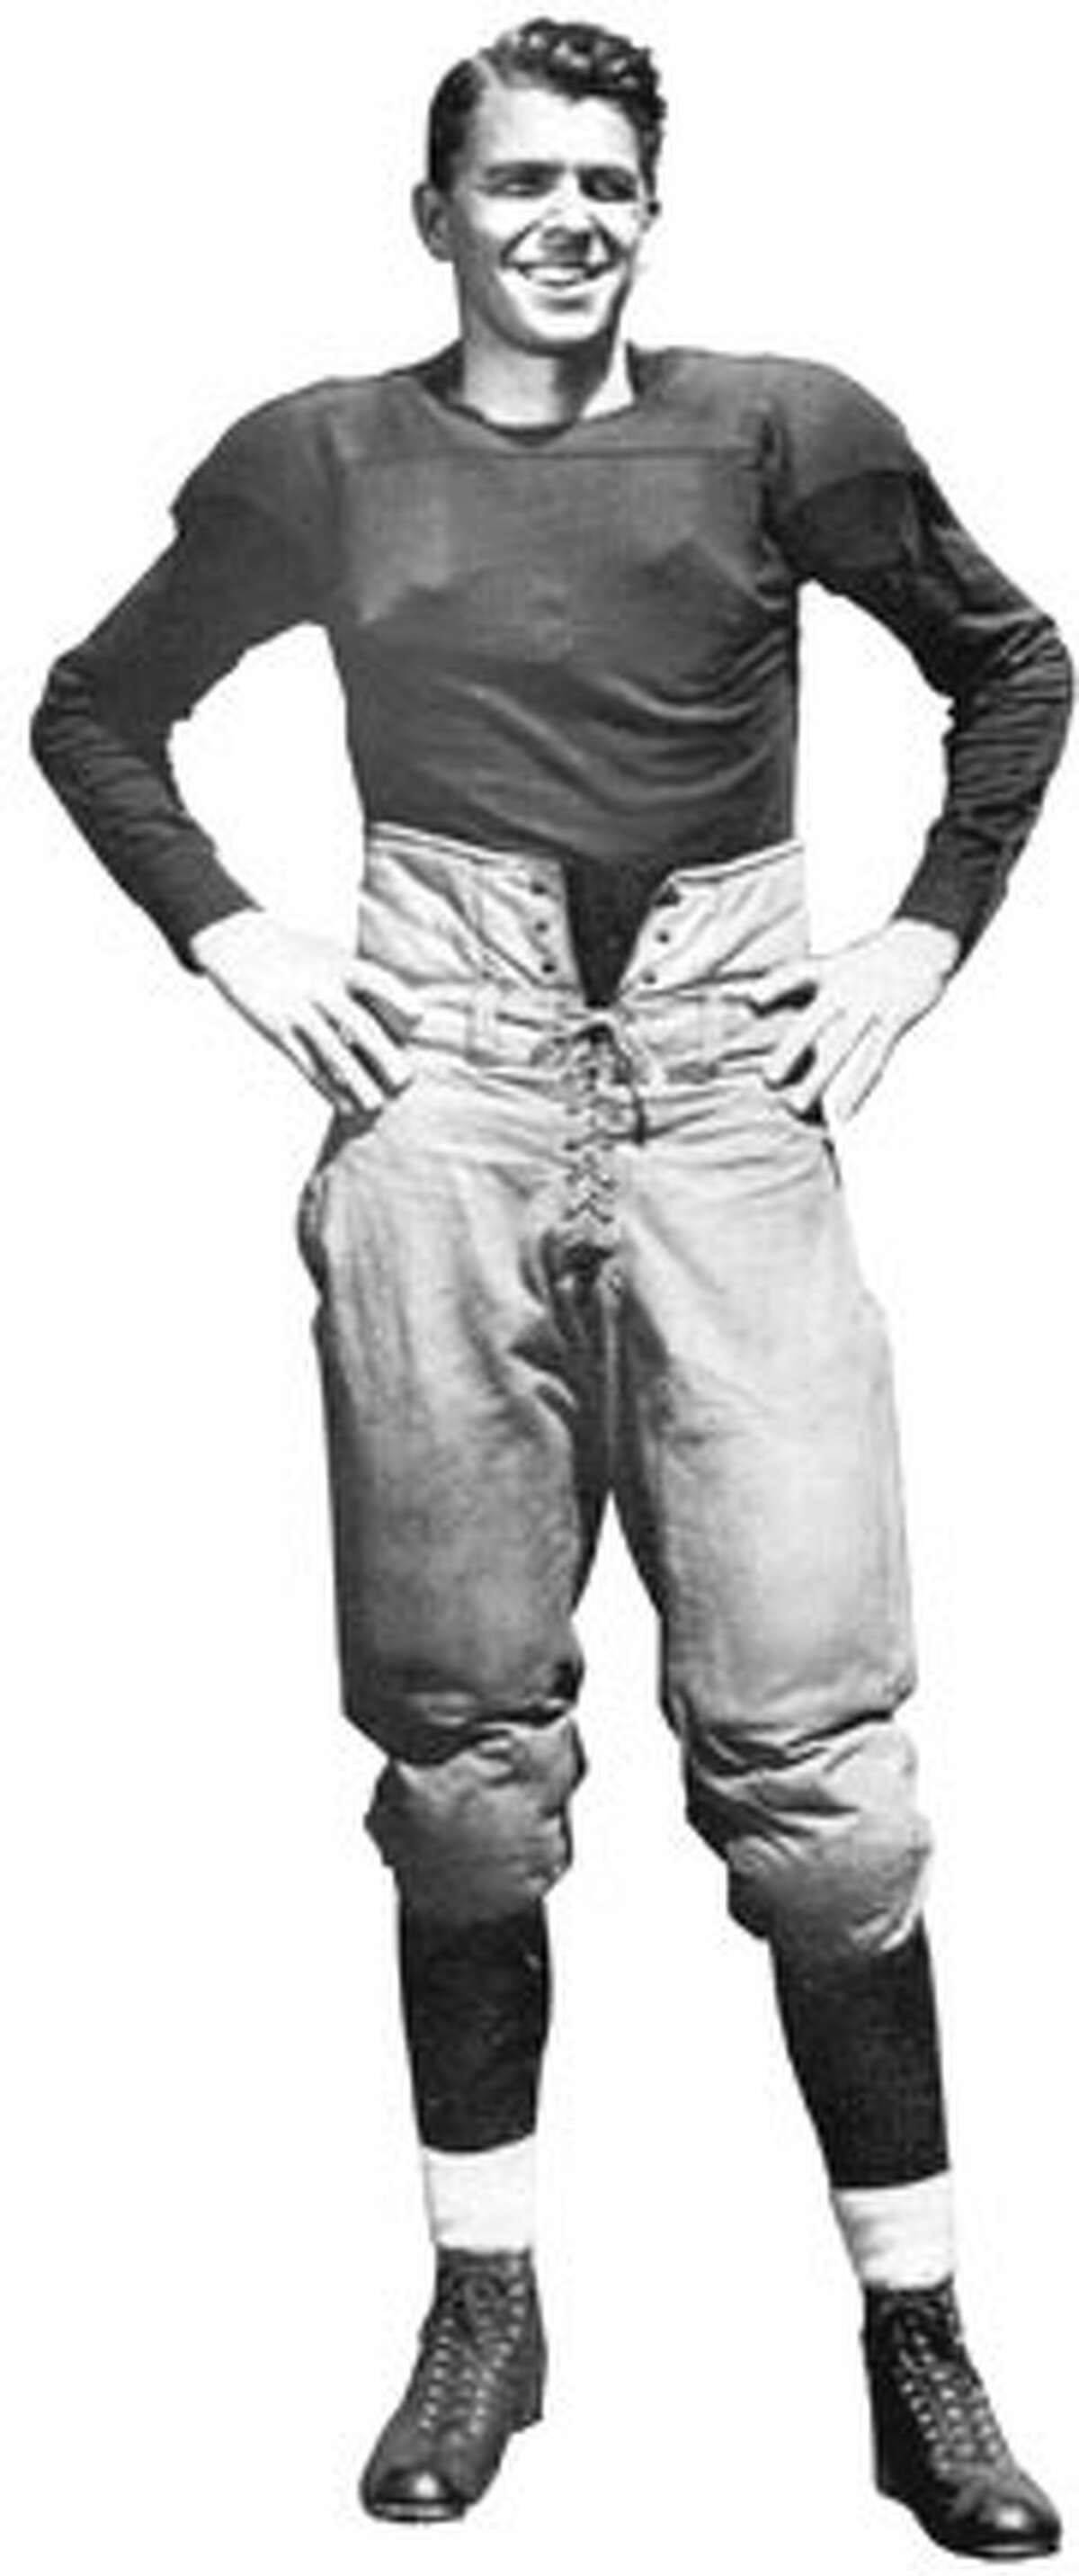 The future president posed in his football uniform at Eureka College in Illinois.